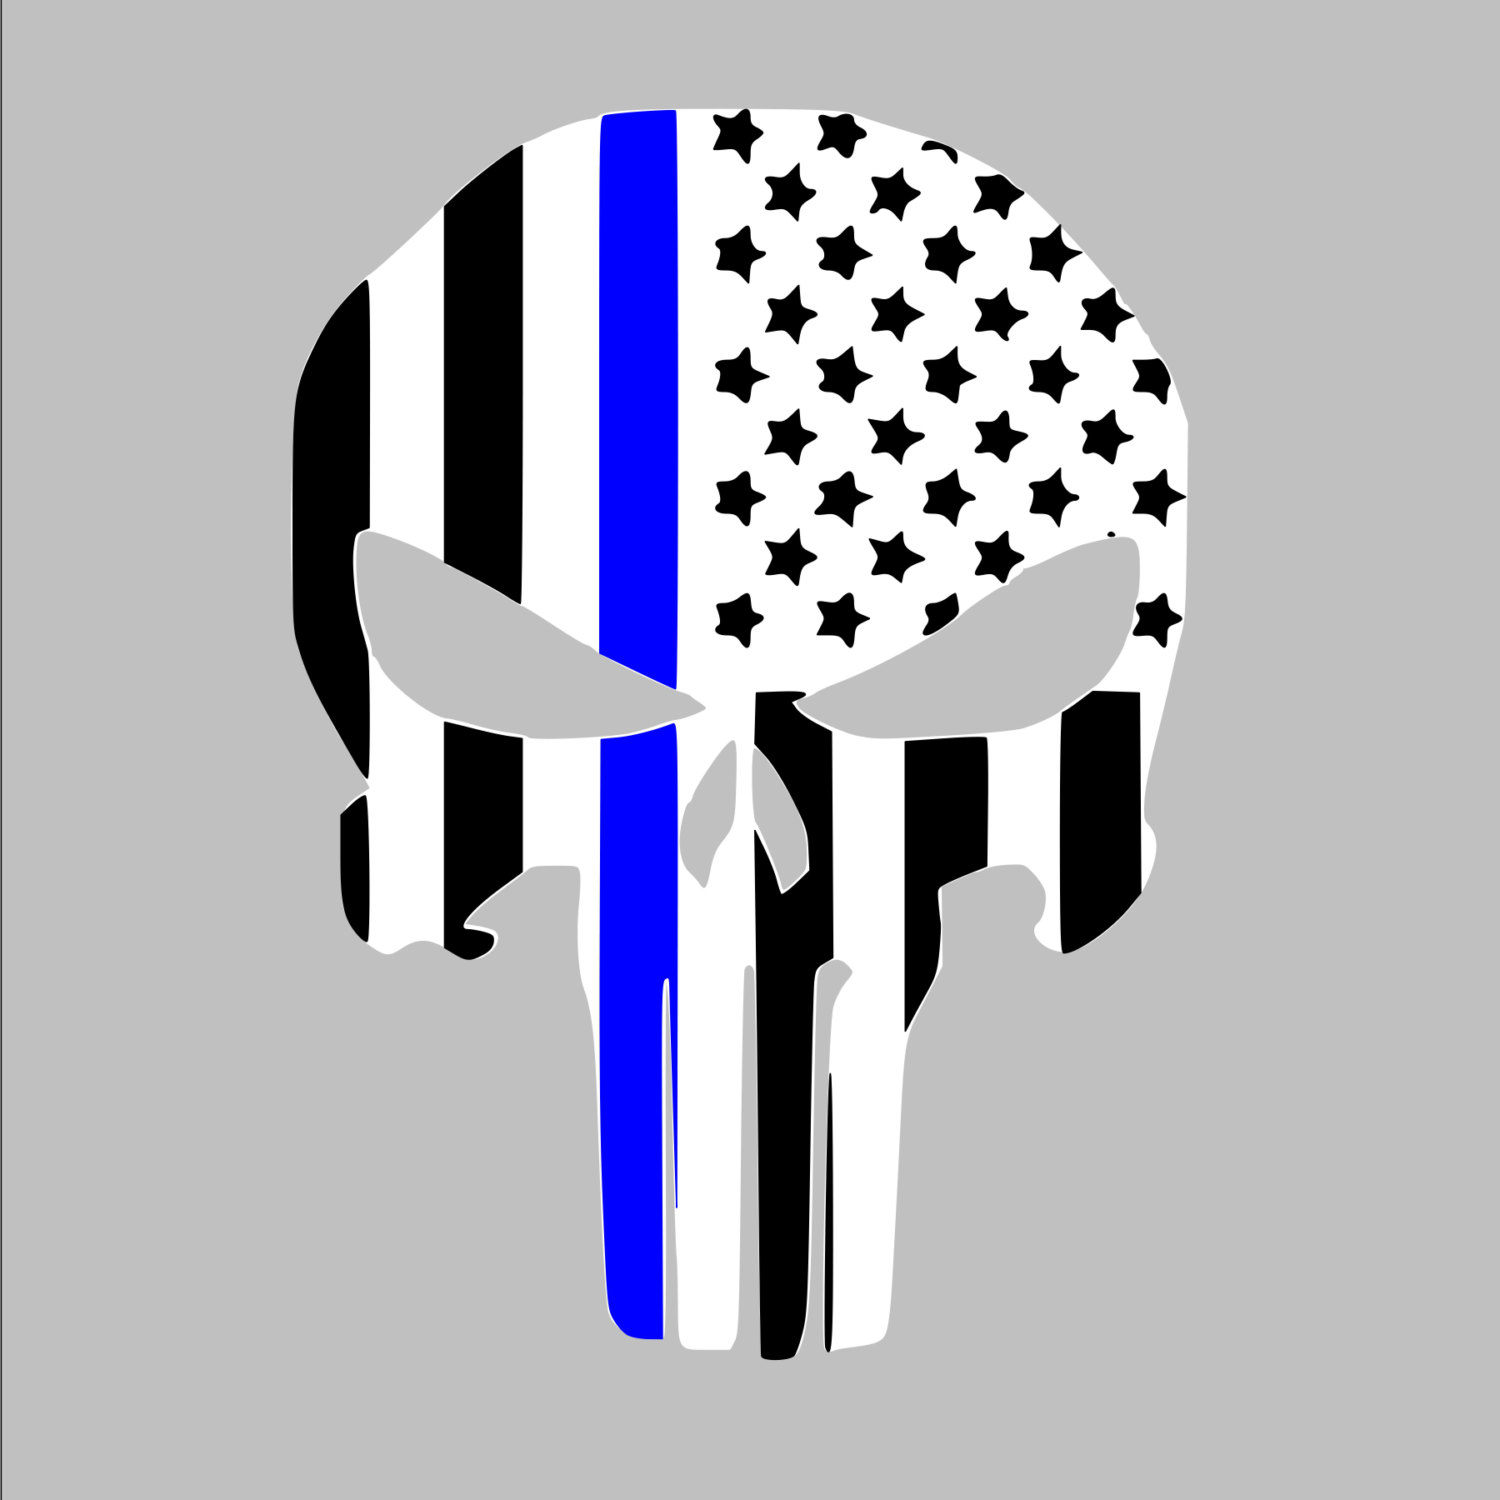 Police American Flag Black And Grey Clipart.